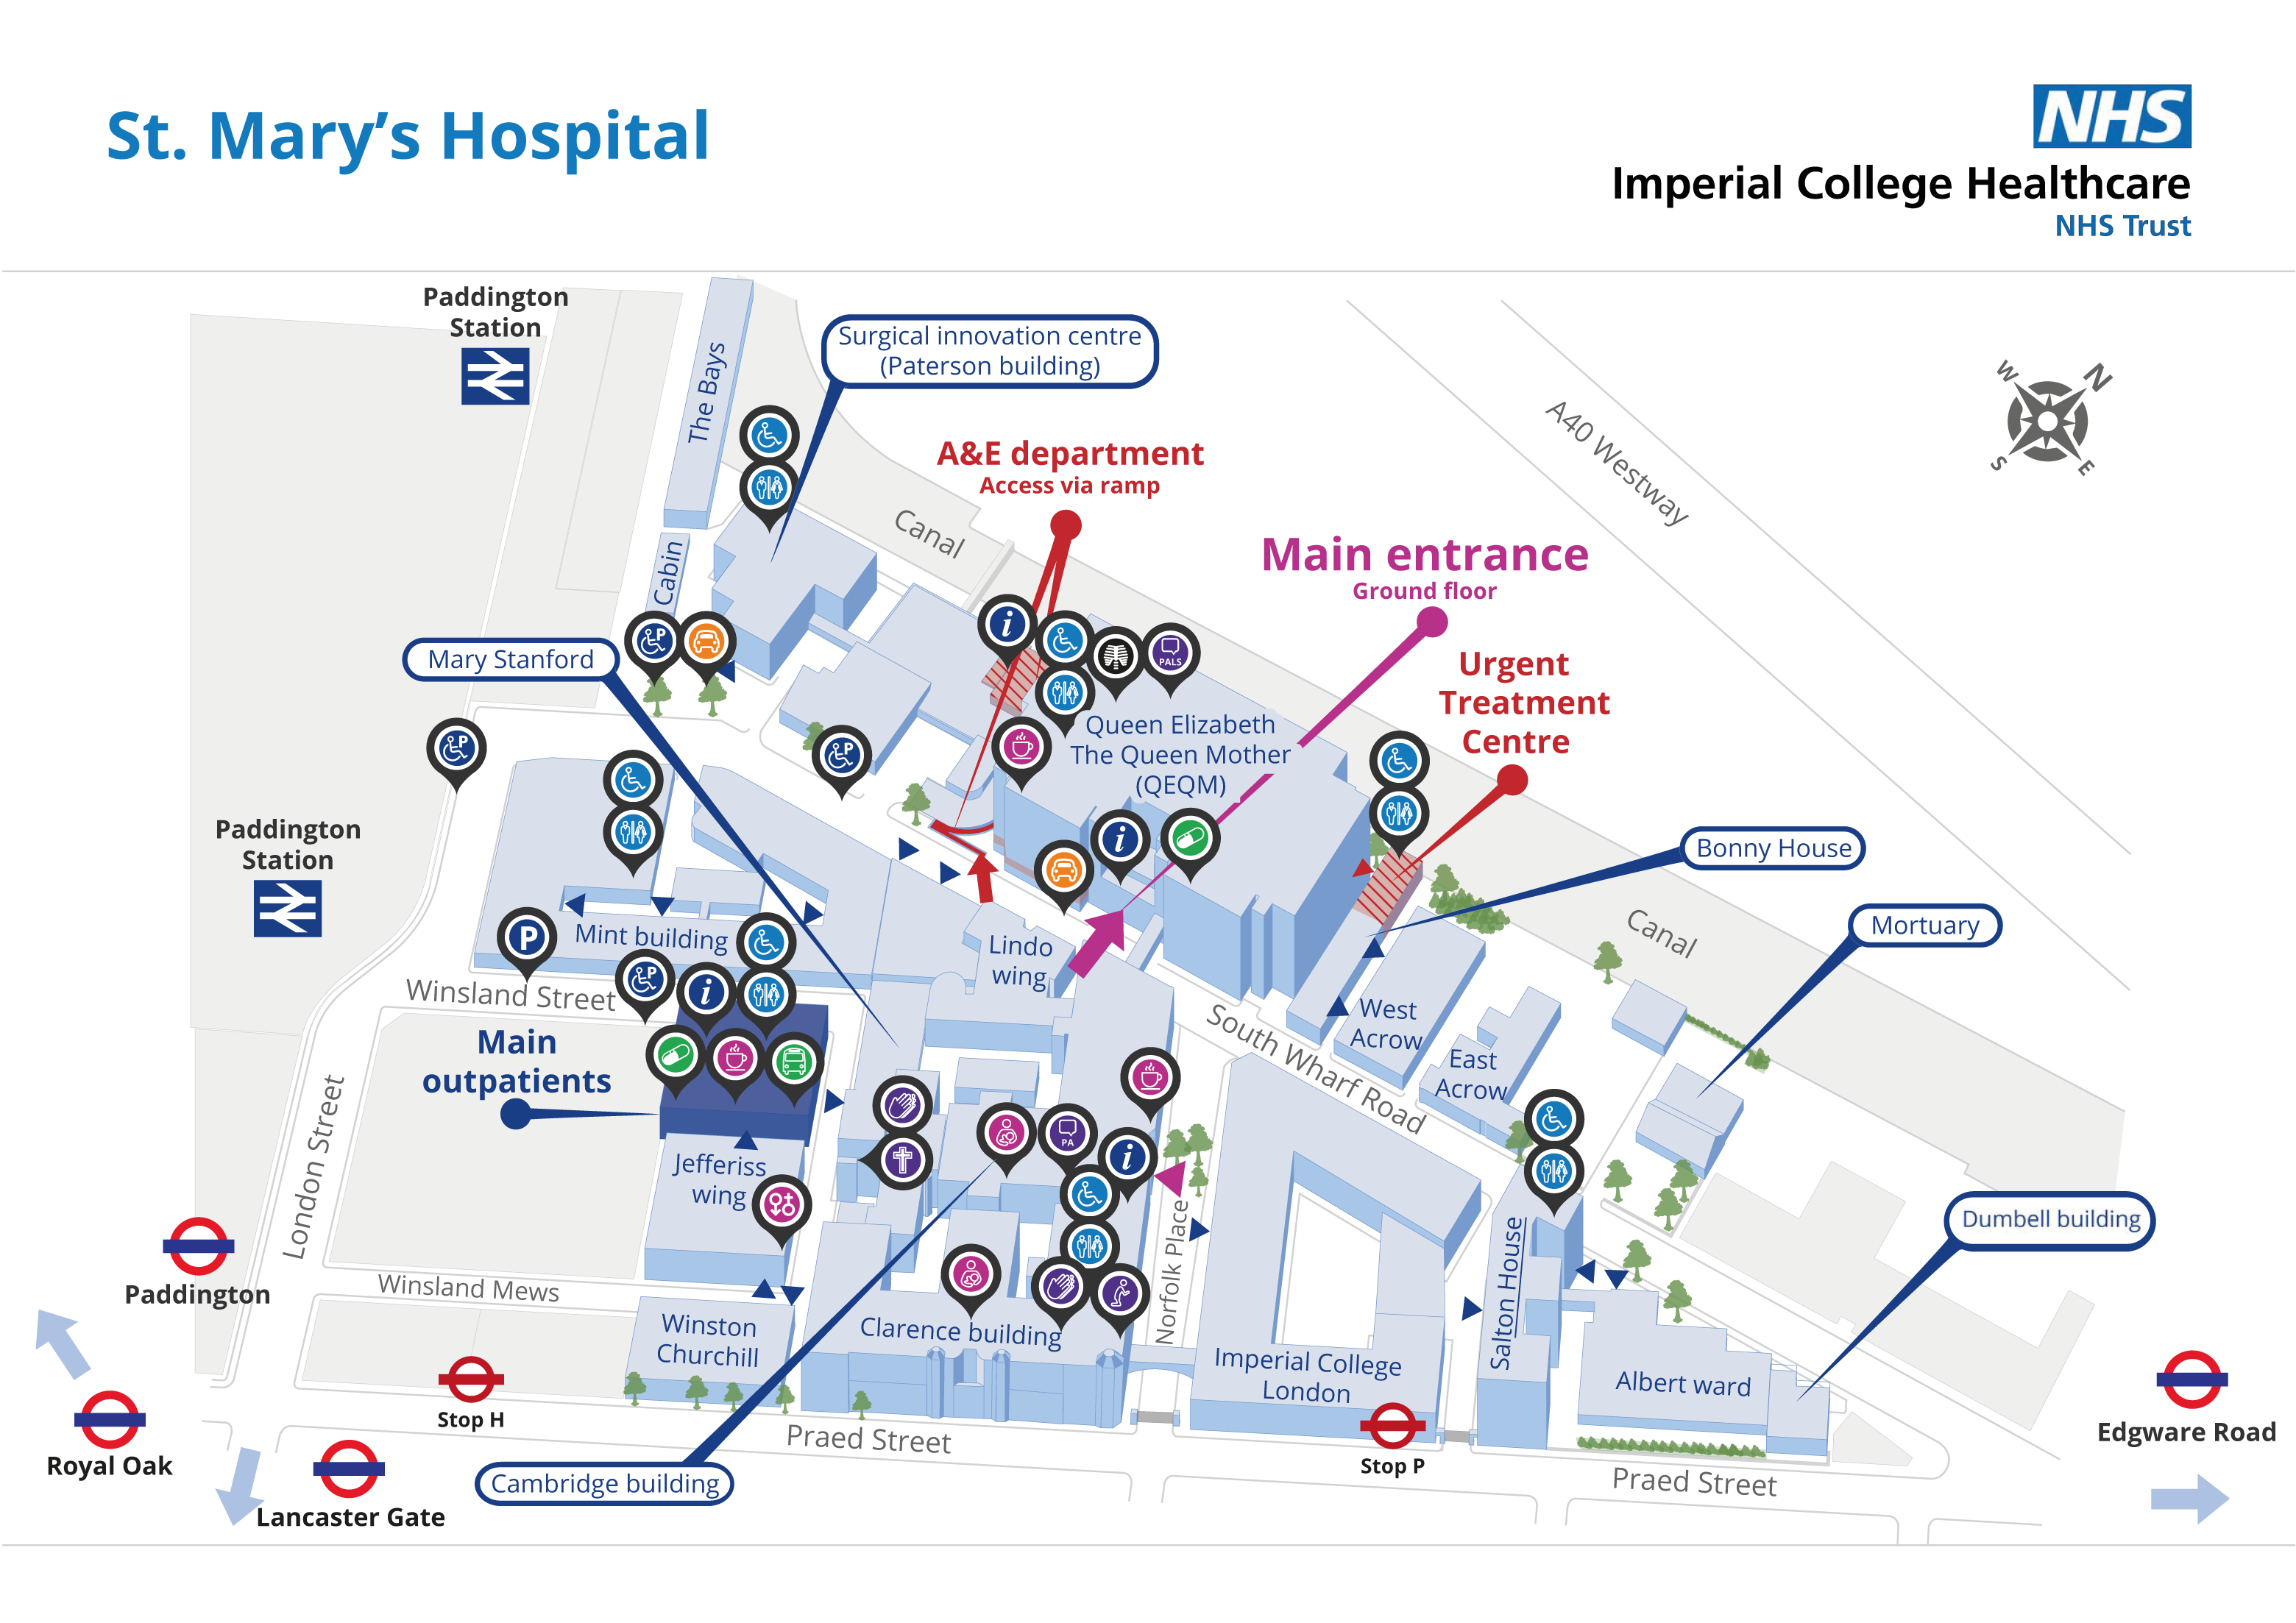 Imperial College Healthcare Hospital Map